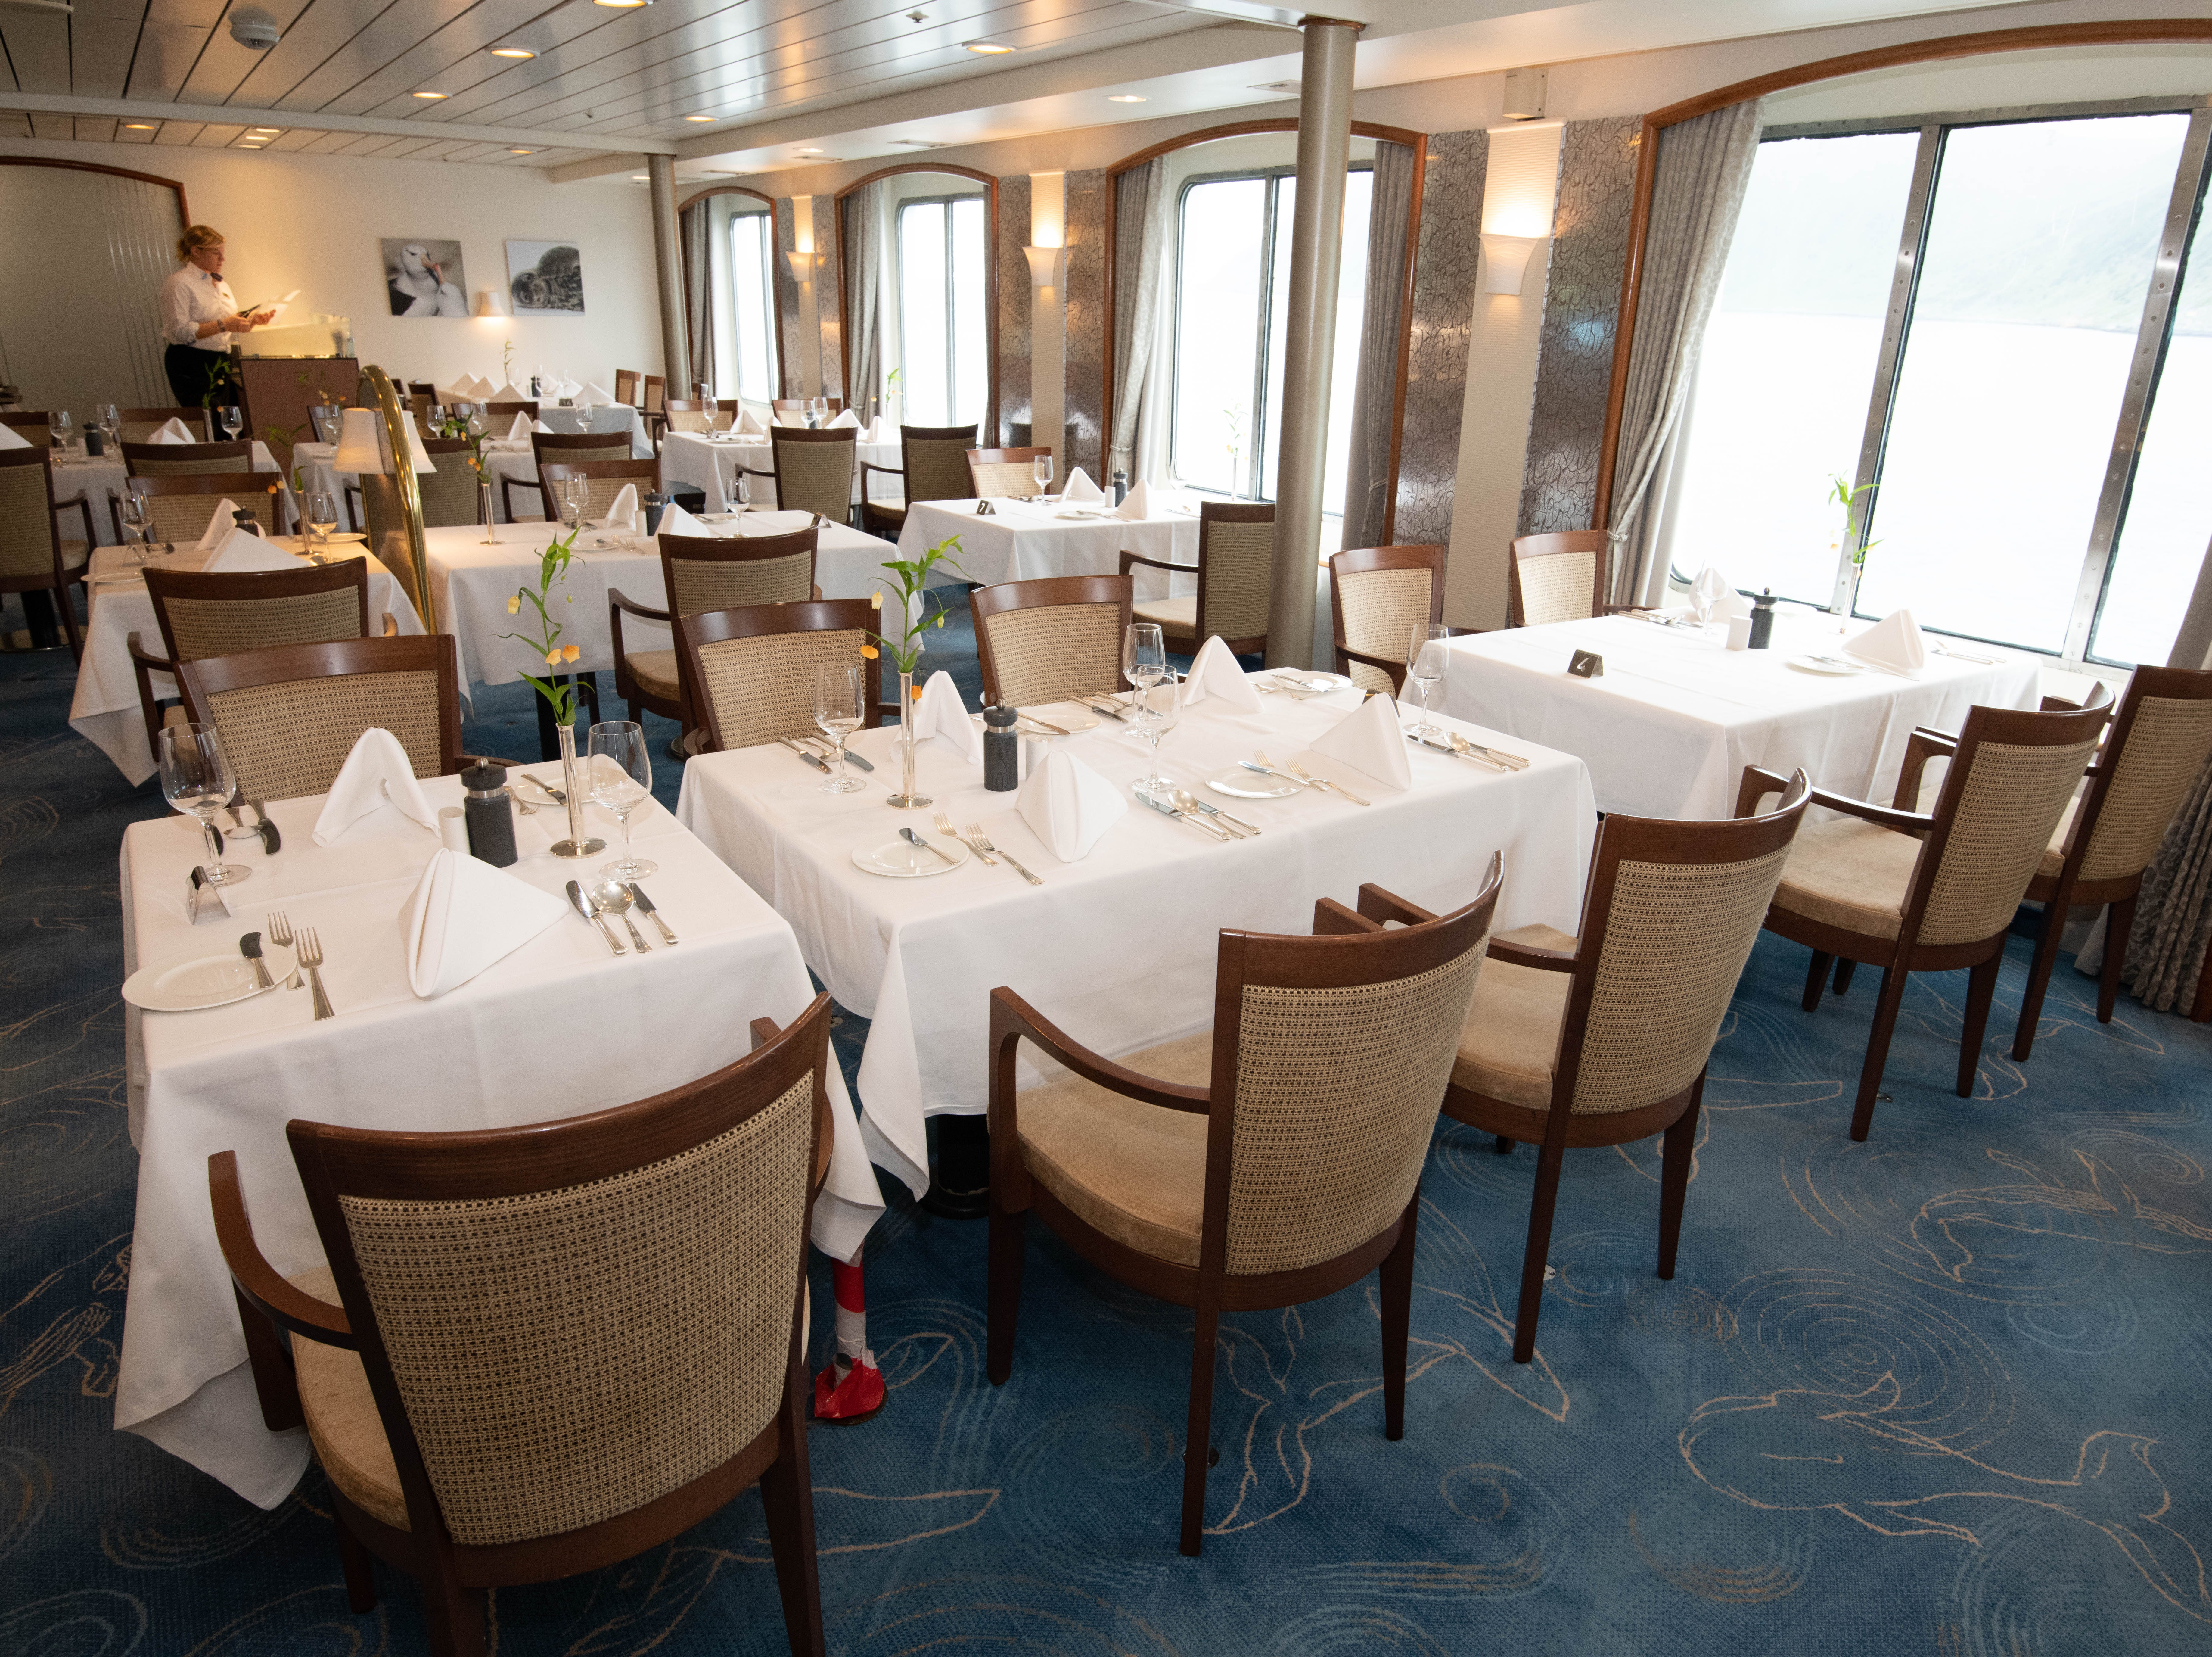 Located on Deck 4, the restaurant has a mix of tables for two, four, six and eight. Dinnertime brings relatively formal multi-course meals with passengers assigned to fixed tables.